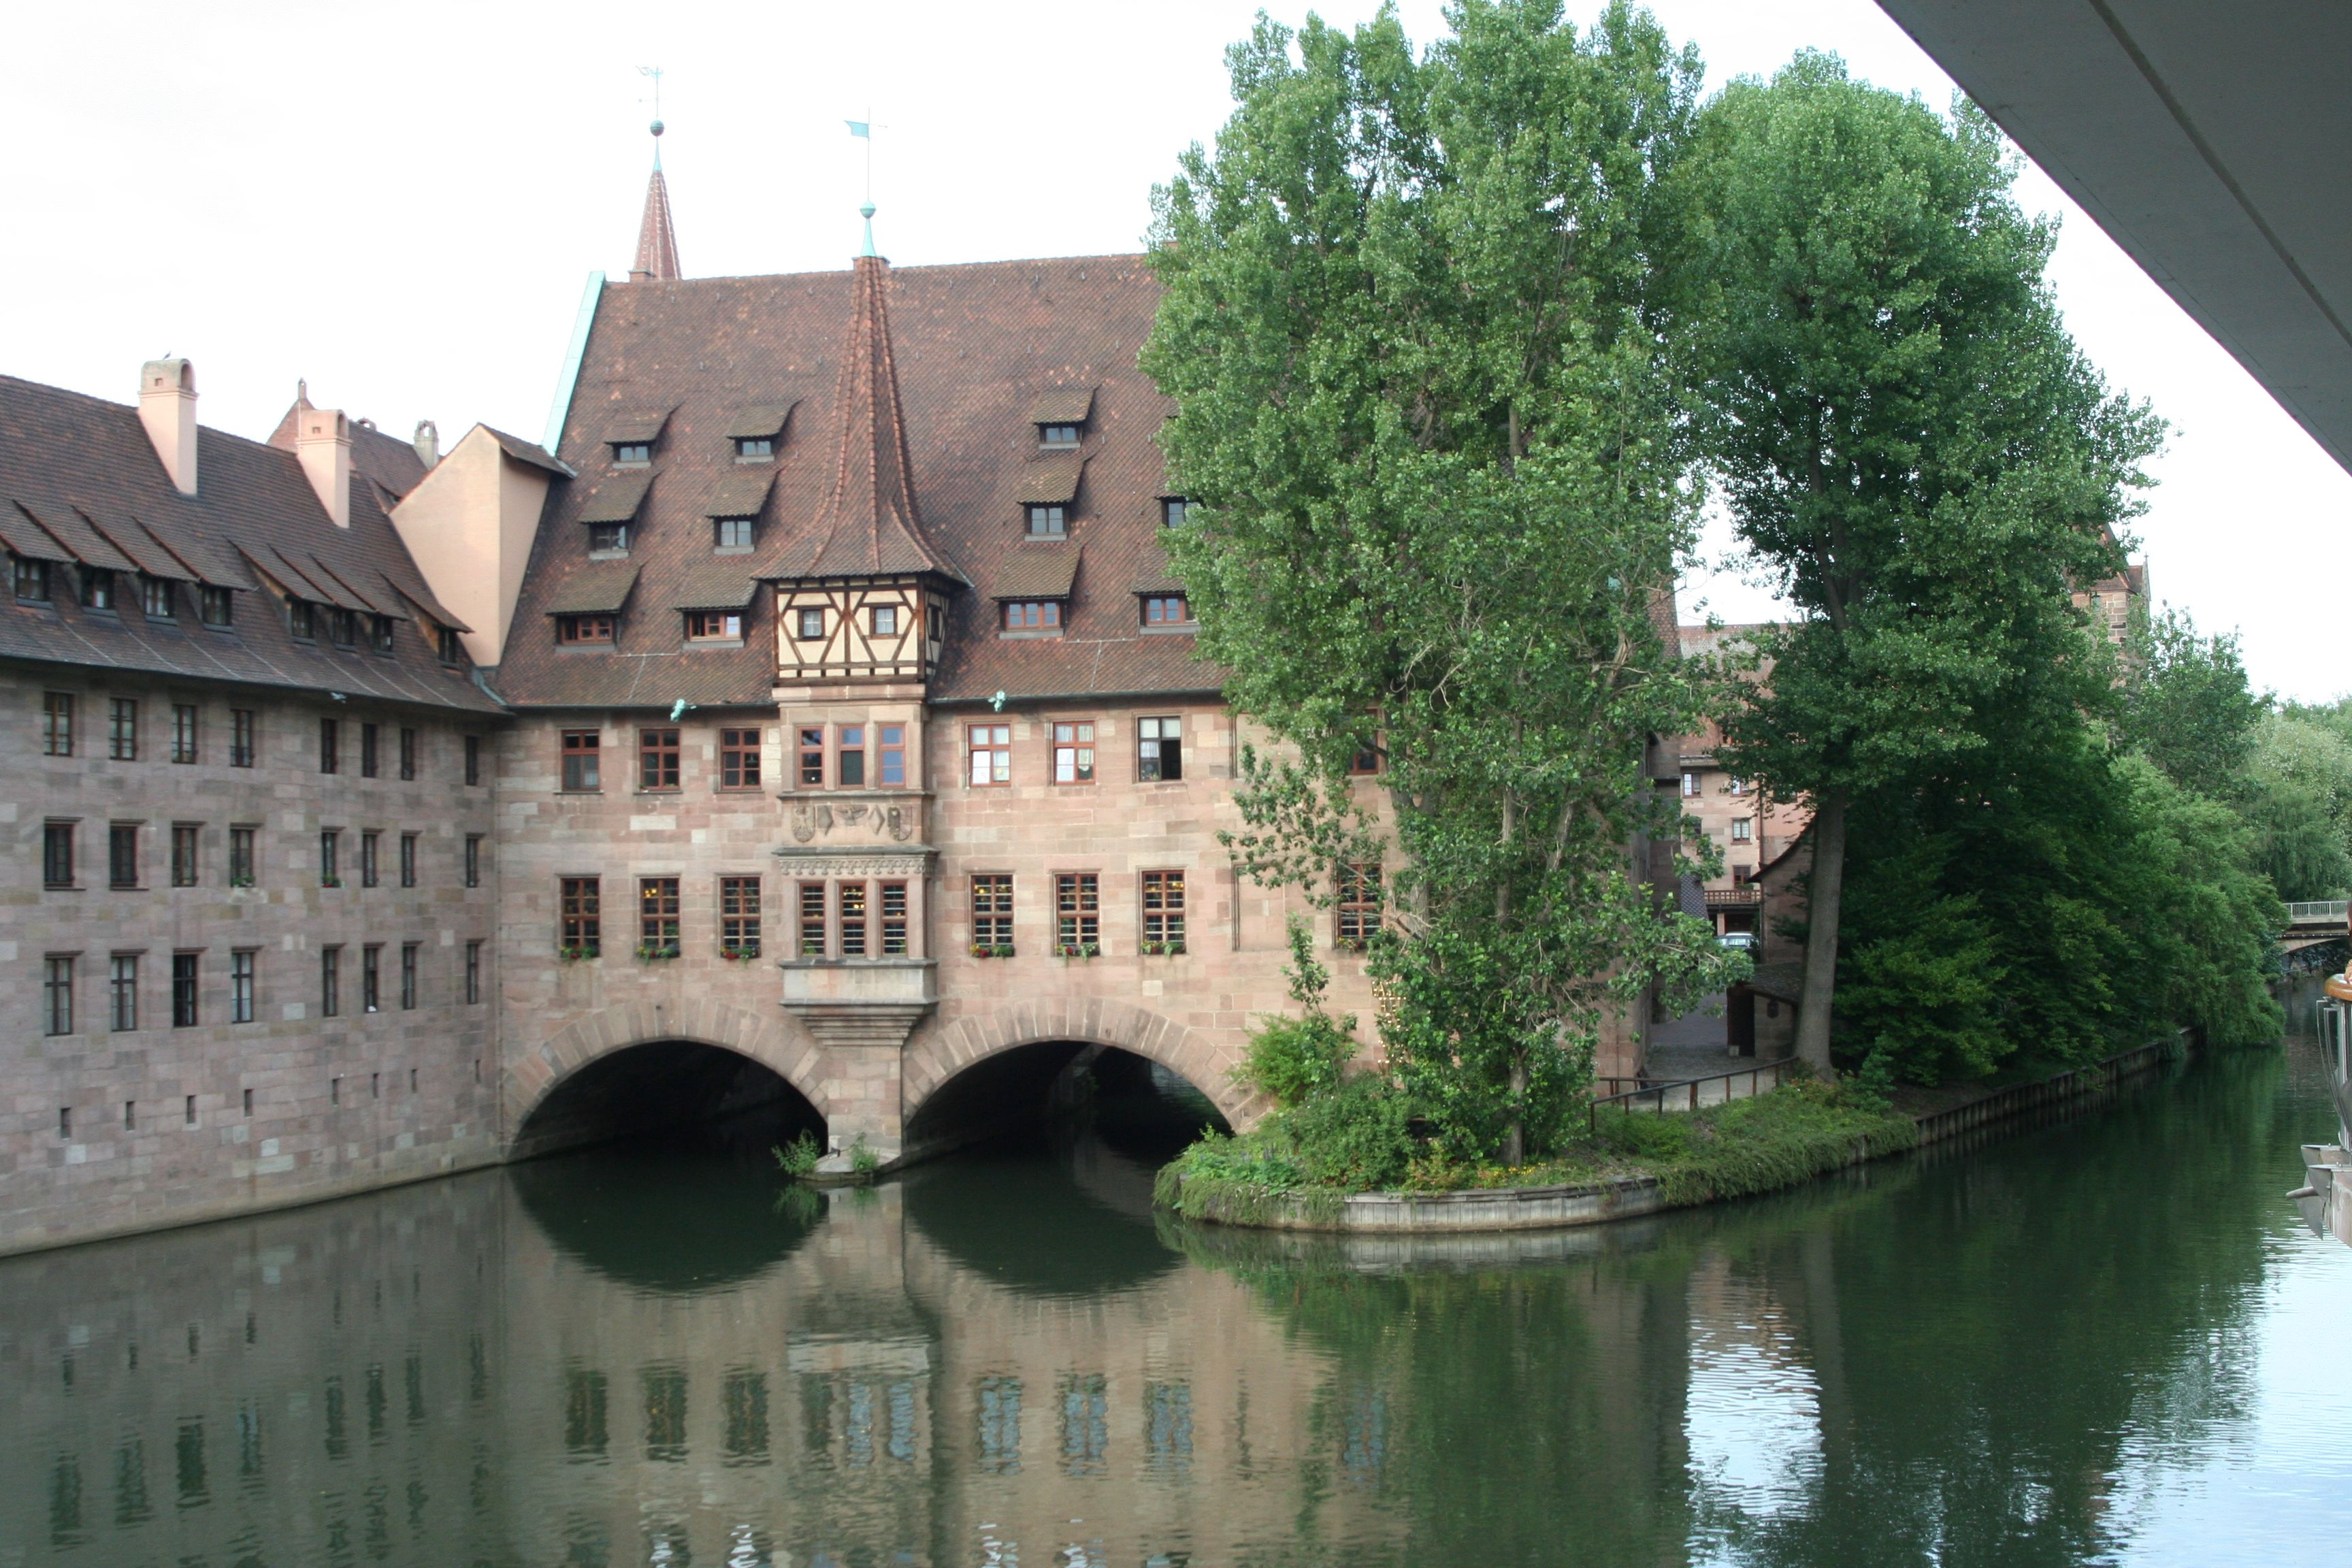 Nuremberg in the city